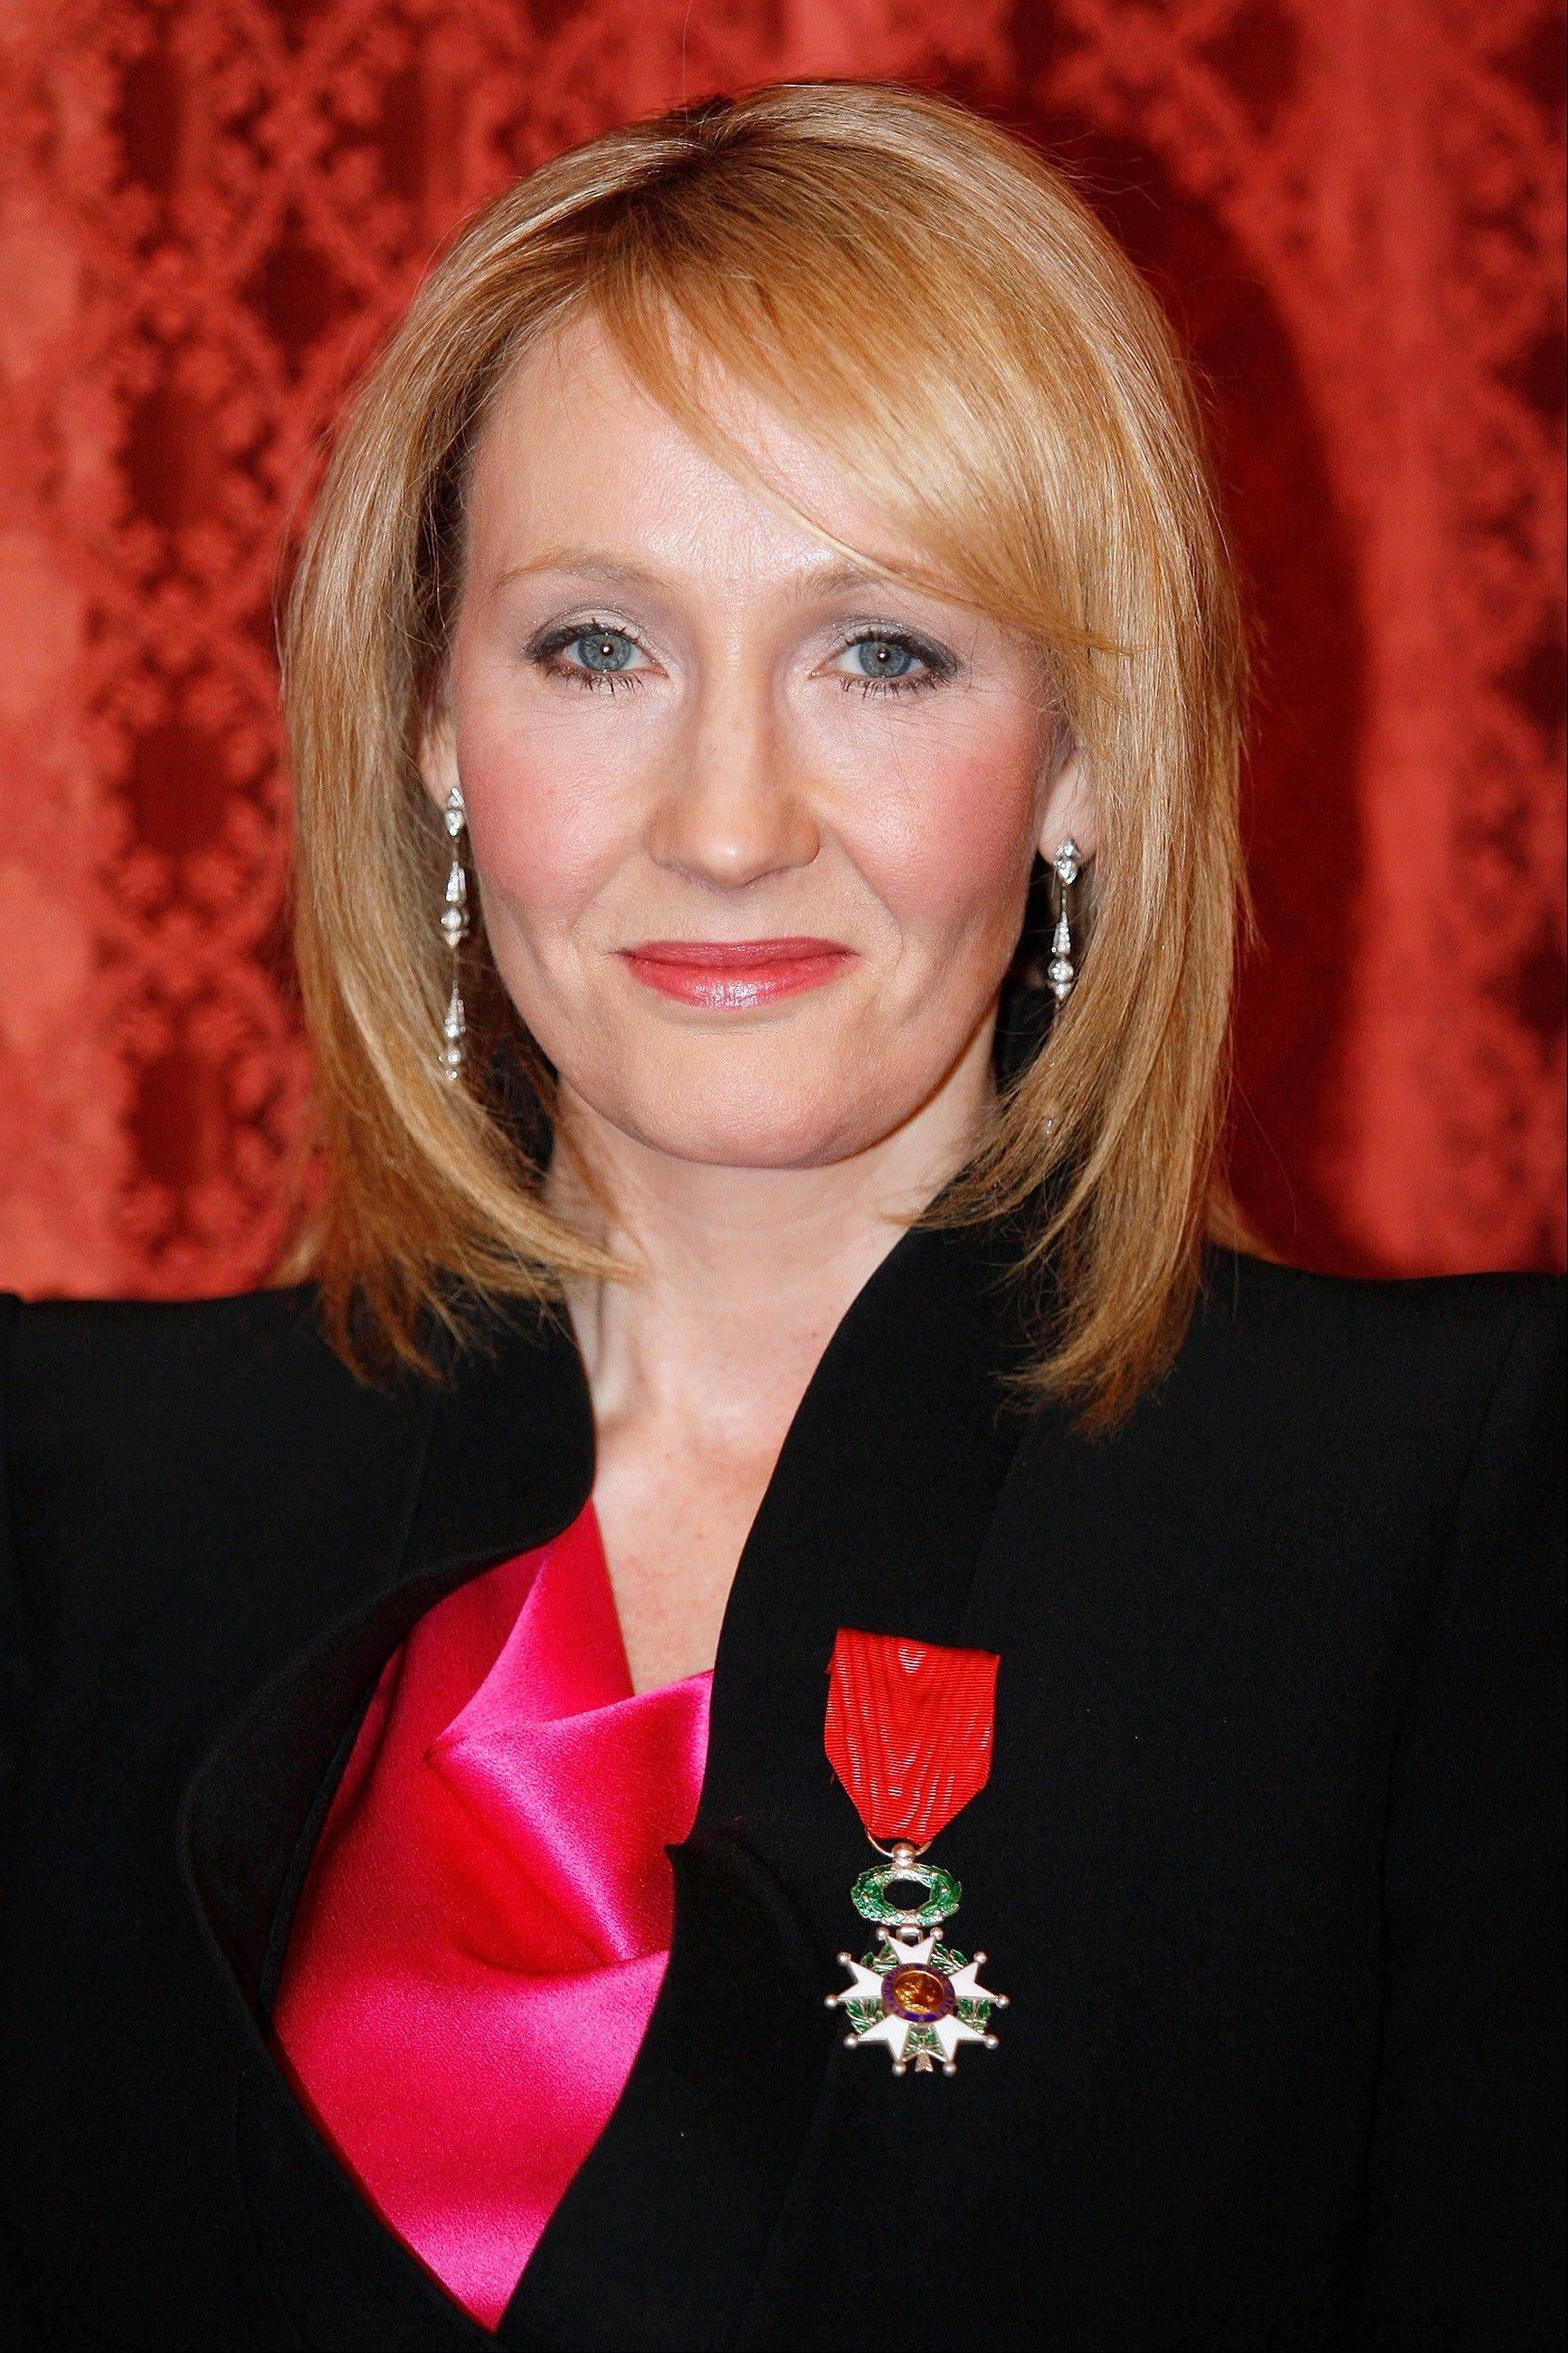 British writer J.K. Rowling says her next book will be for young people.